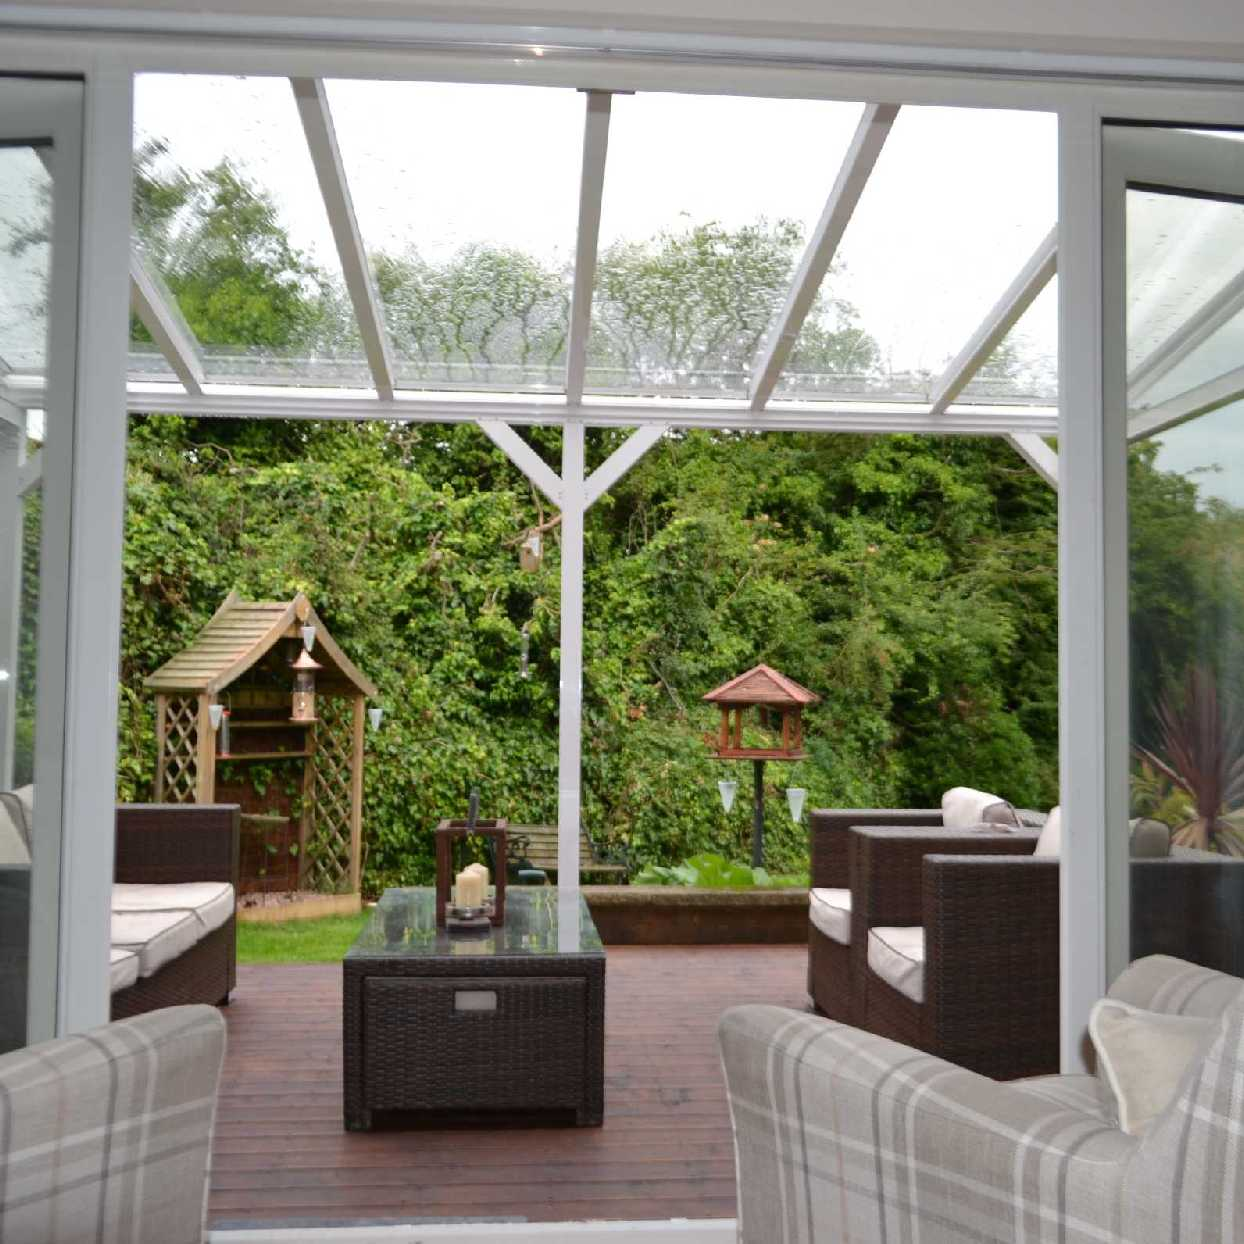 Great selection of Omega Smart White Lean-To Canopy UNGLAZED for 6mm Glazing - 9.8m (W) x 1.5m (P), (5) Supporting Posts